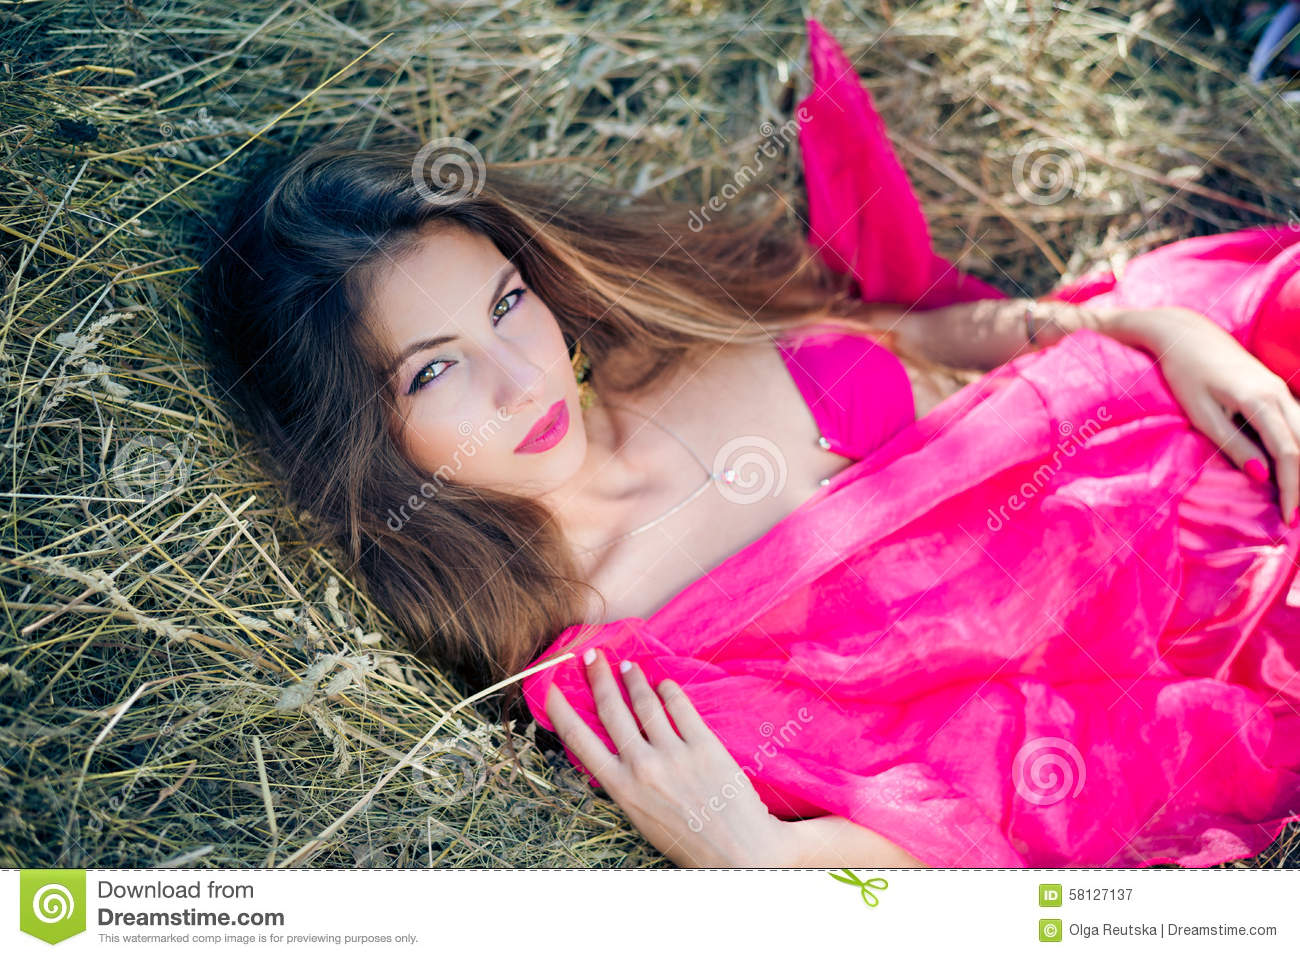 sexi amazing young lady with long hair in pink stock image - image